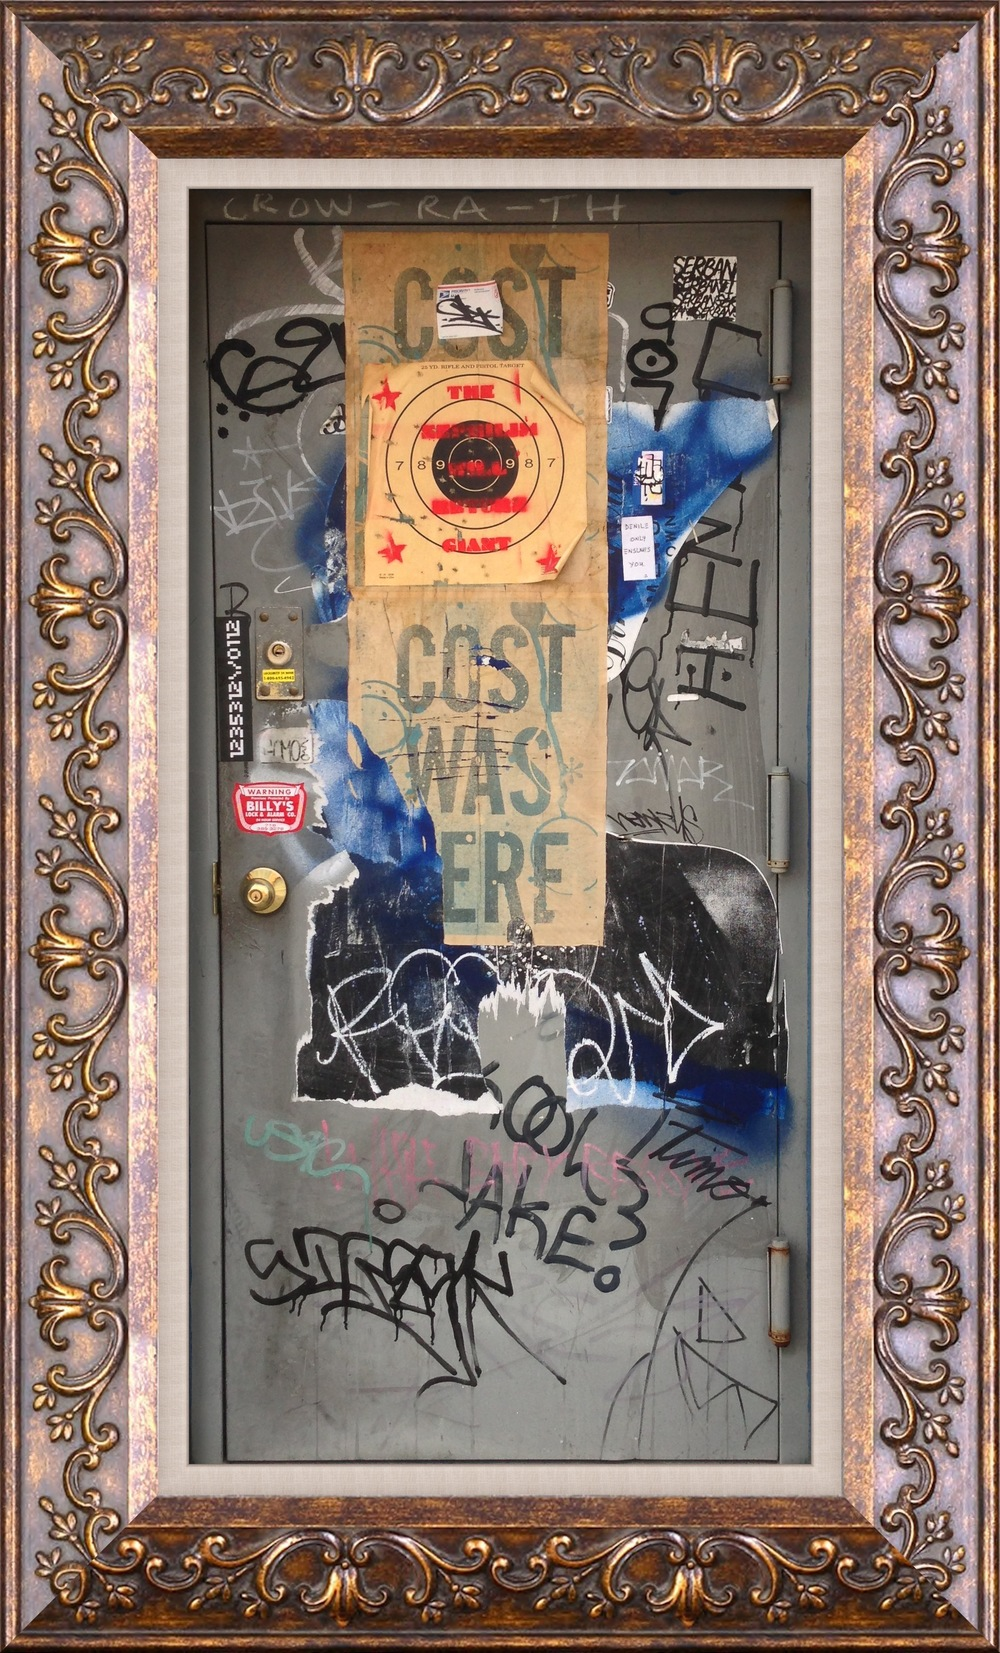 MASTERPIECE_DOOR_Wythe Ave at N 14th St.jpg